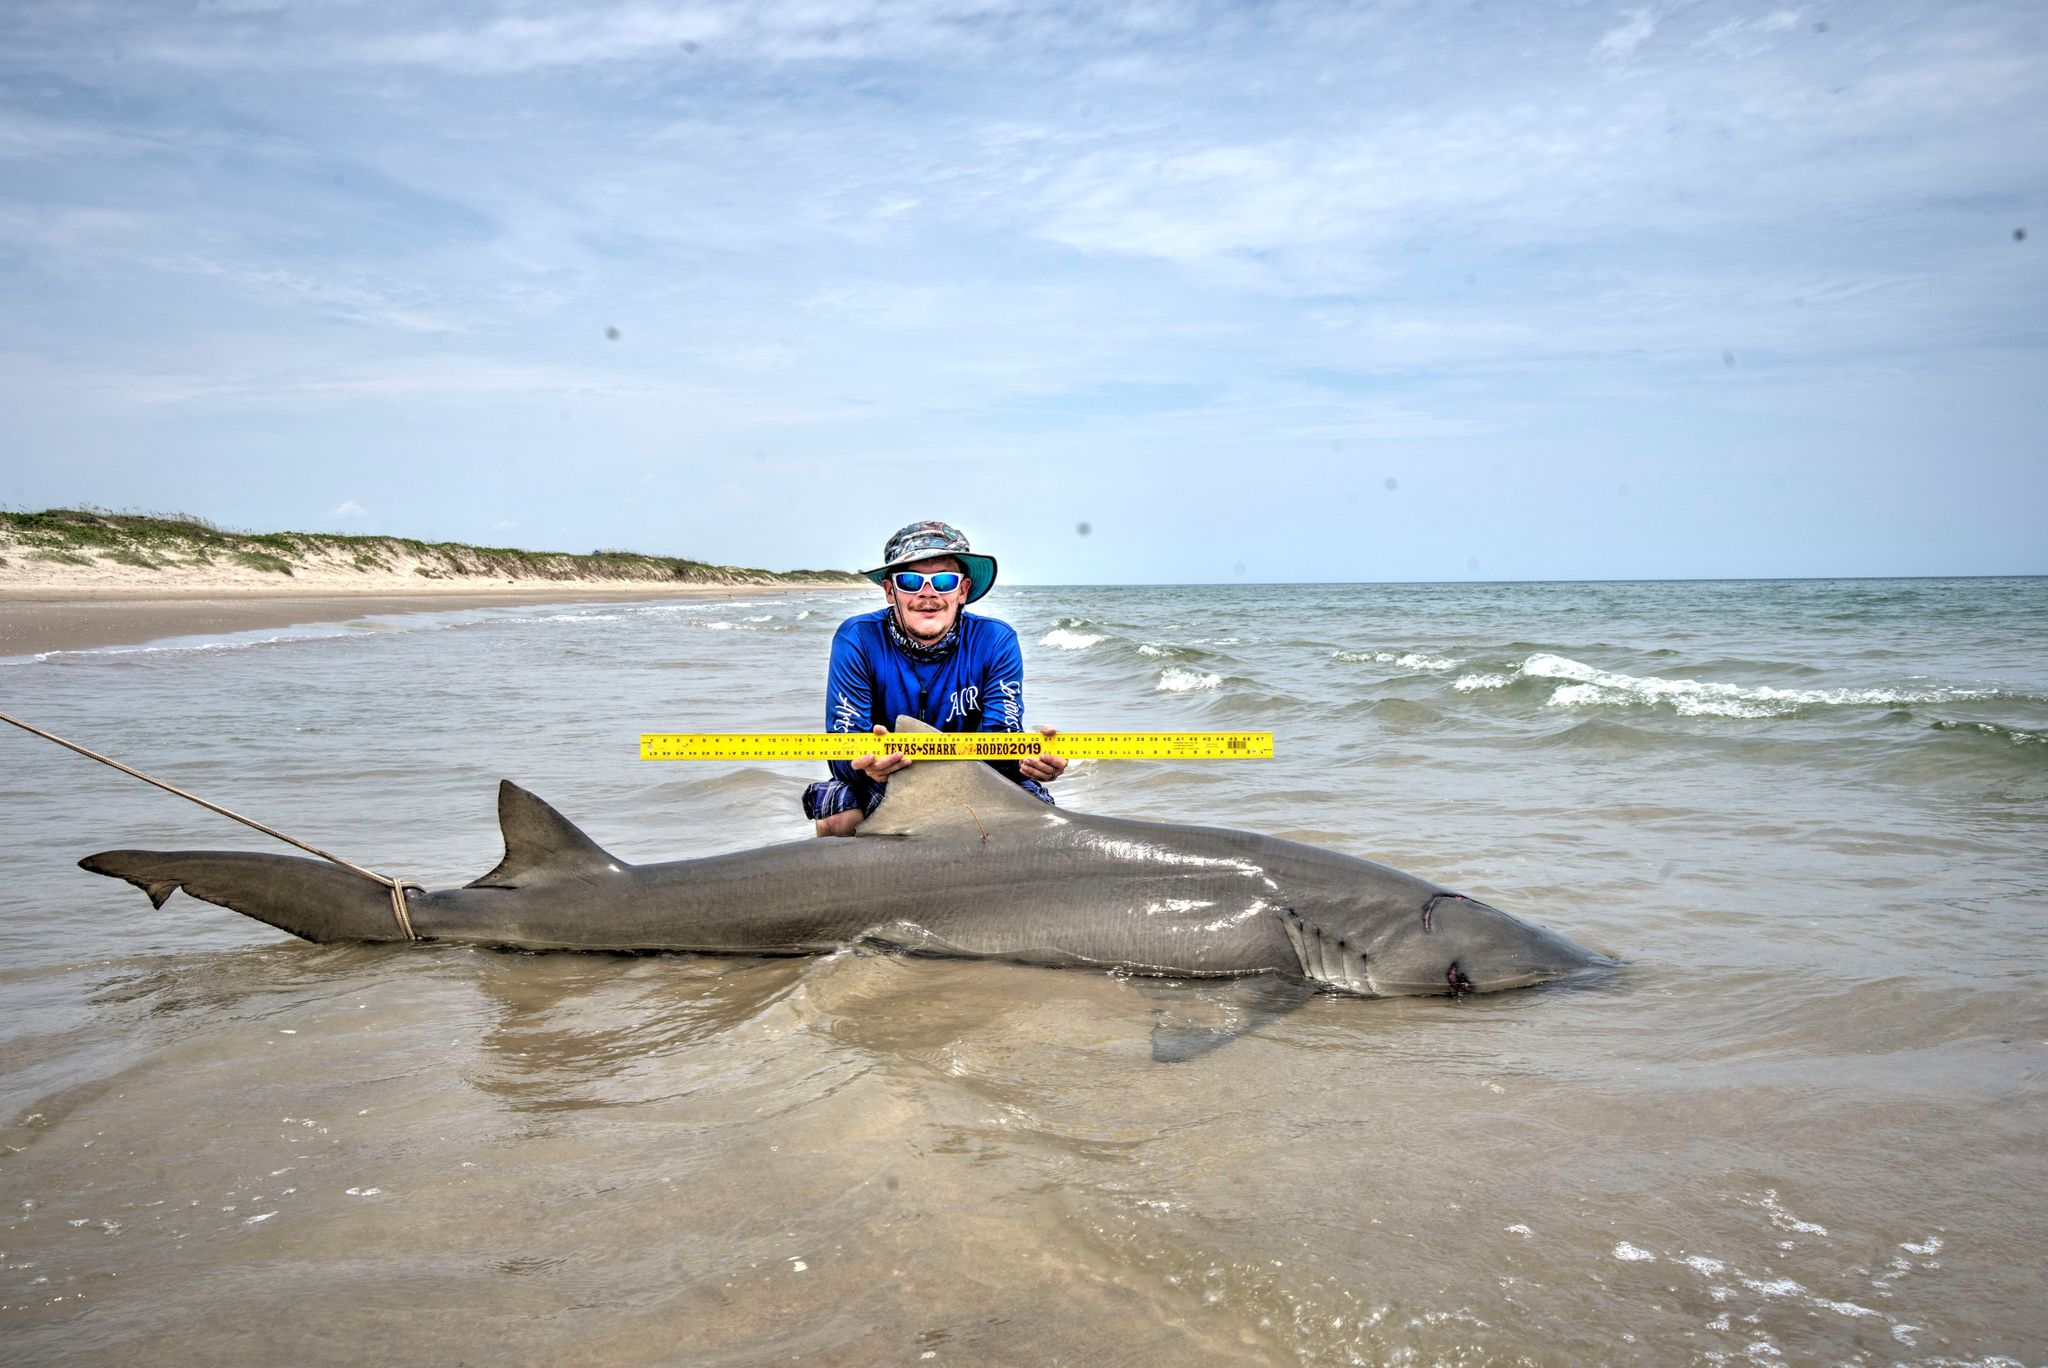 Two anglers caught the same 10-foot shark 13 months apart from each other at Texas beach